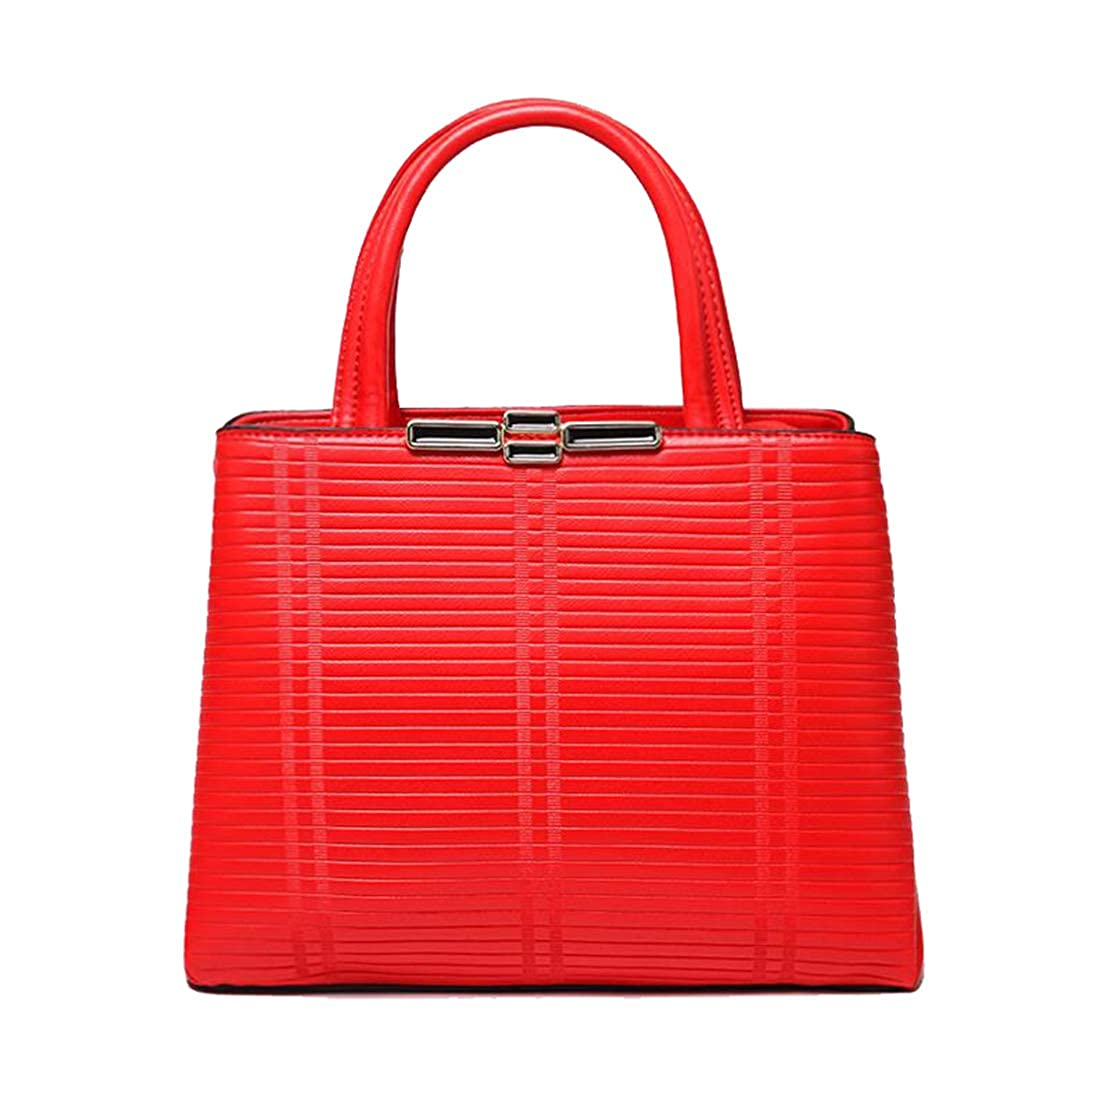 Red 11 Yan Show Women's PU Satchel Elegant Handbag Shoulder Bag Top Handle Bag Purse